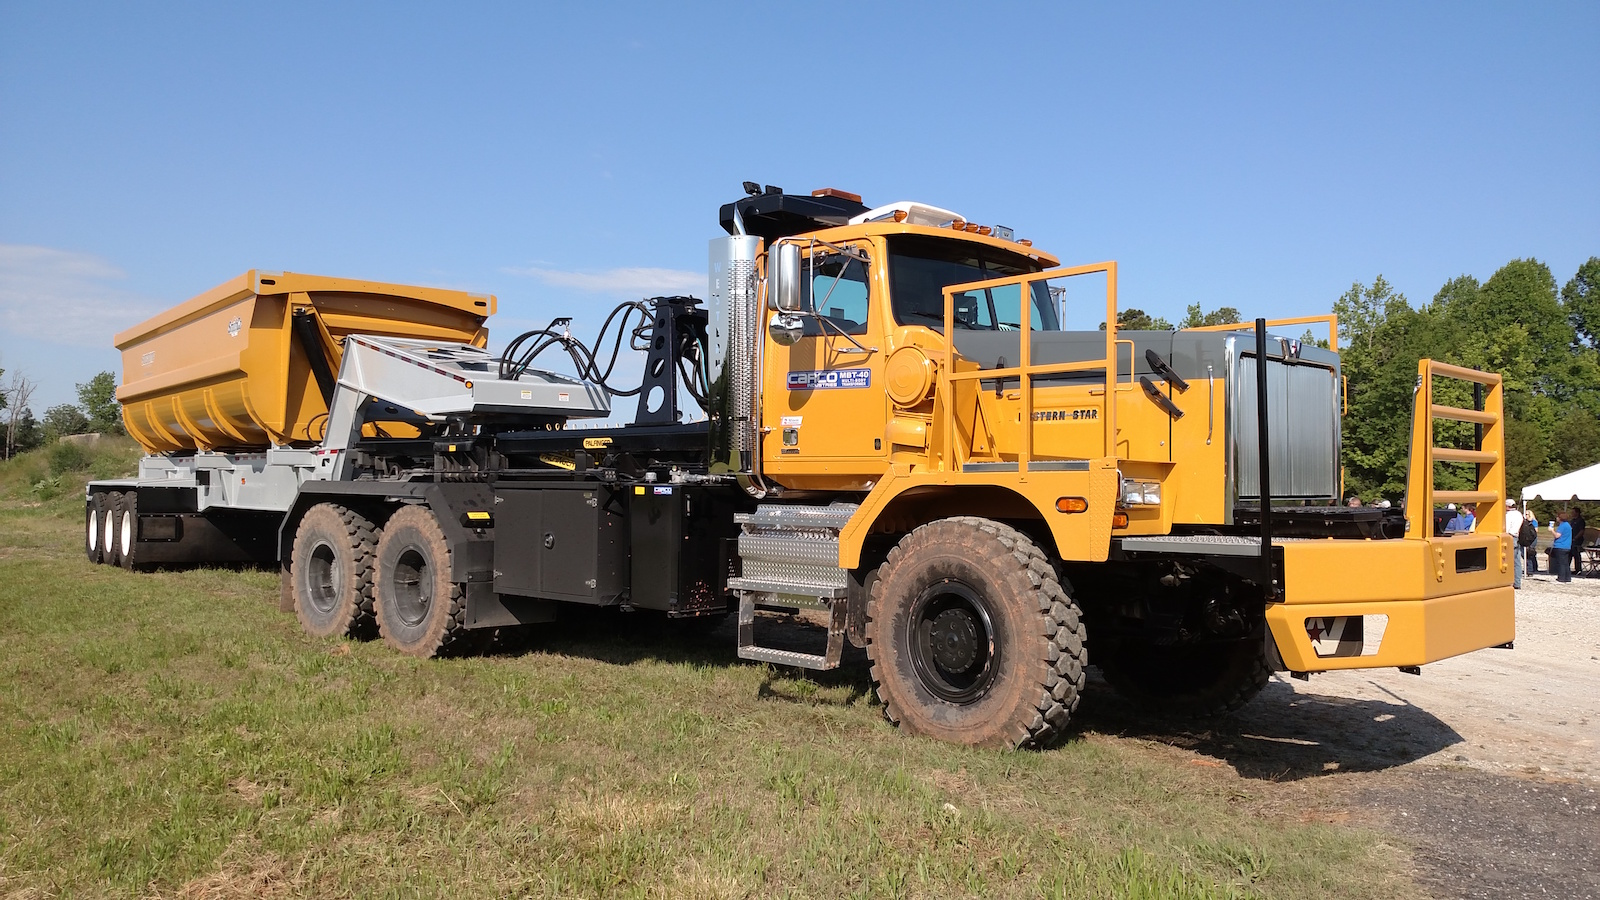 Heavy Western 6900 Haul Star